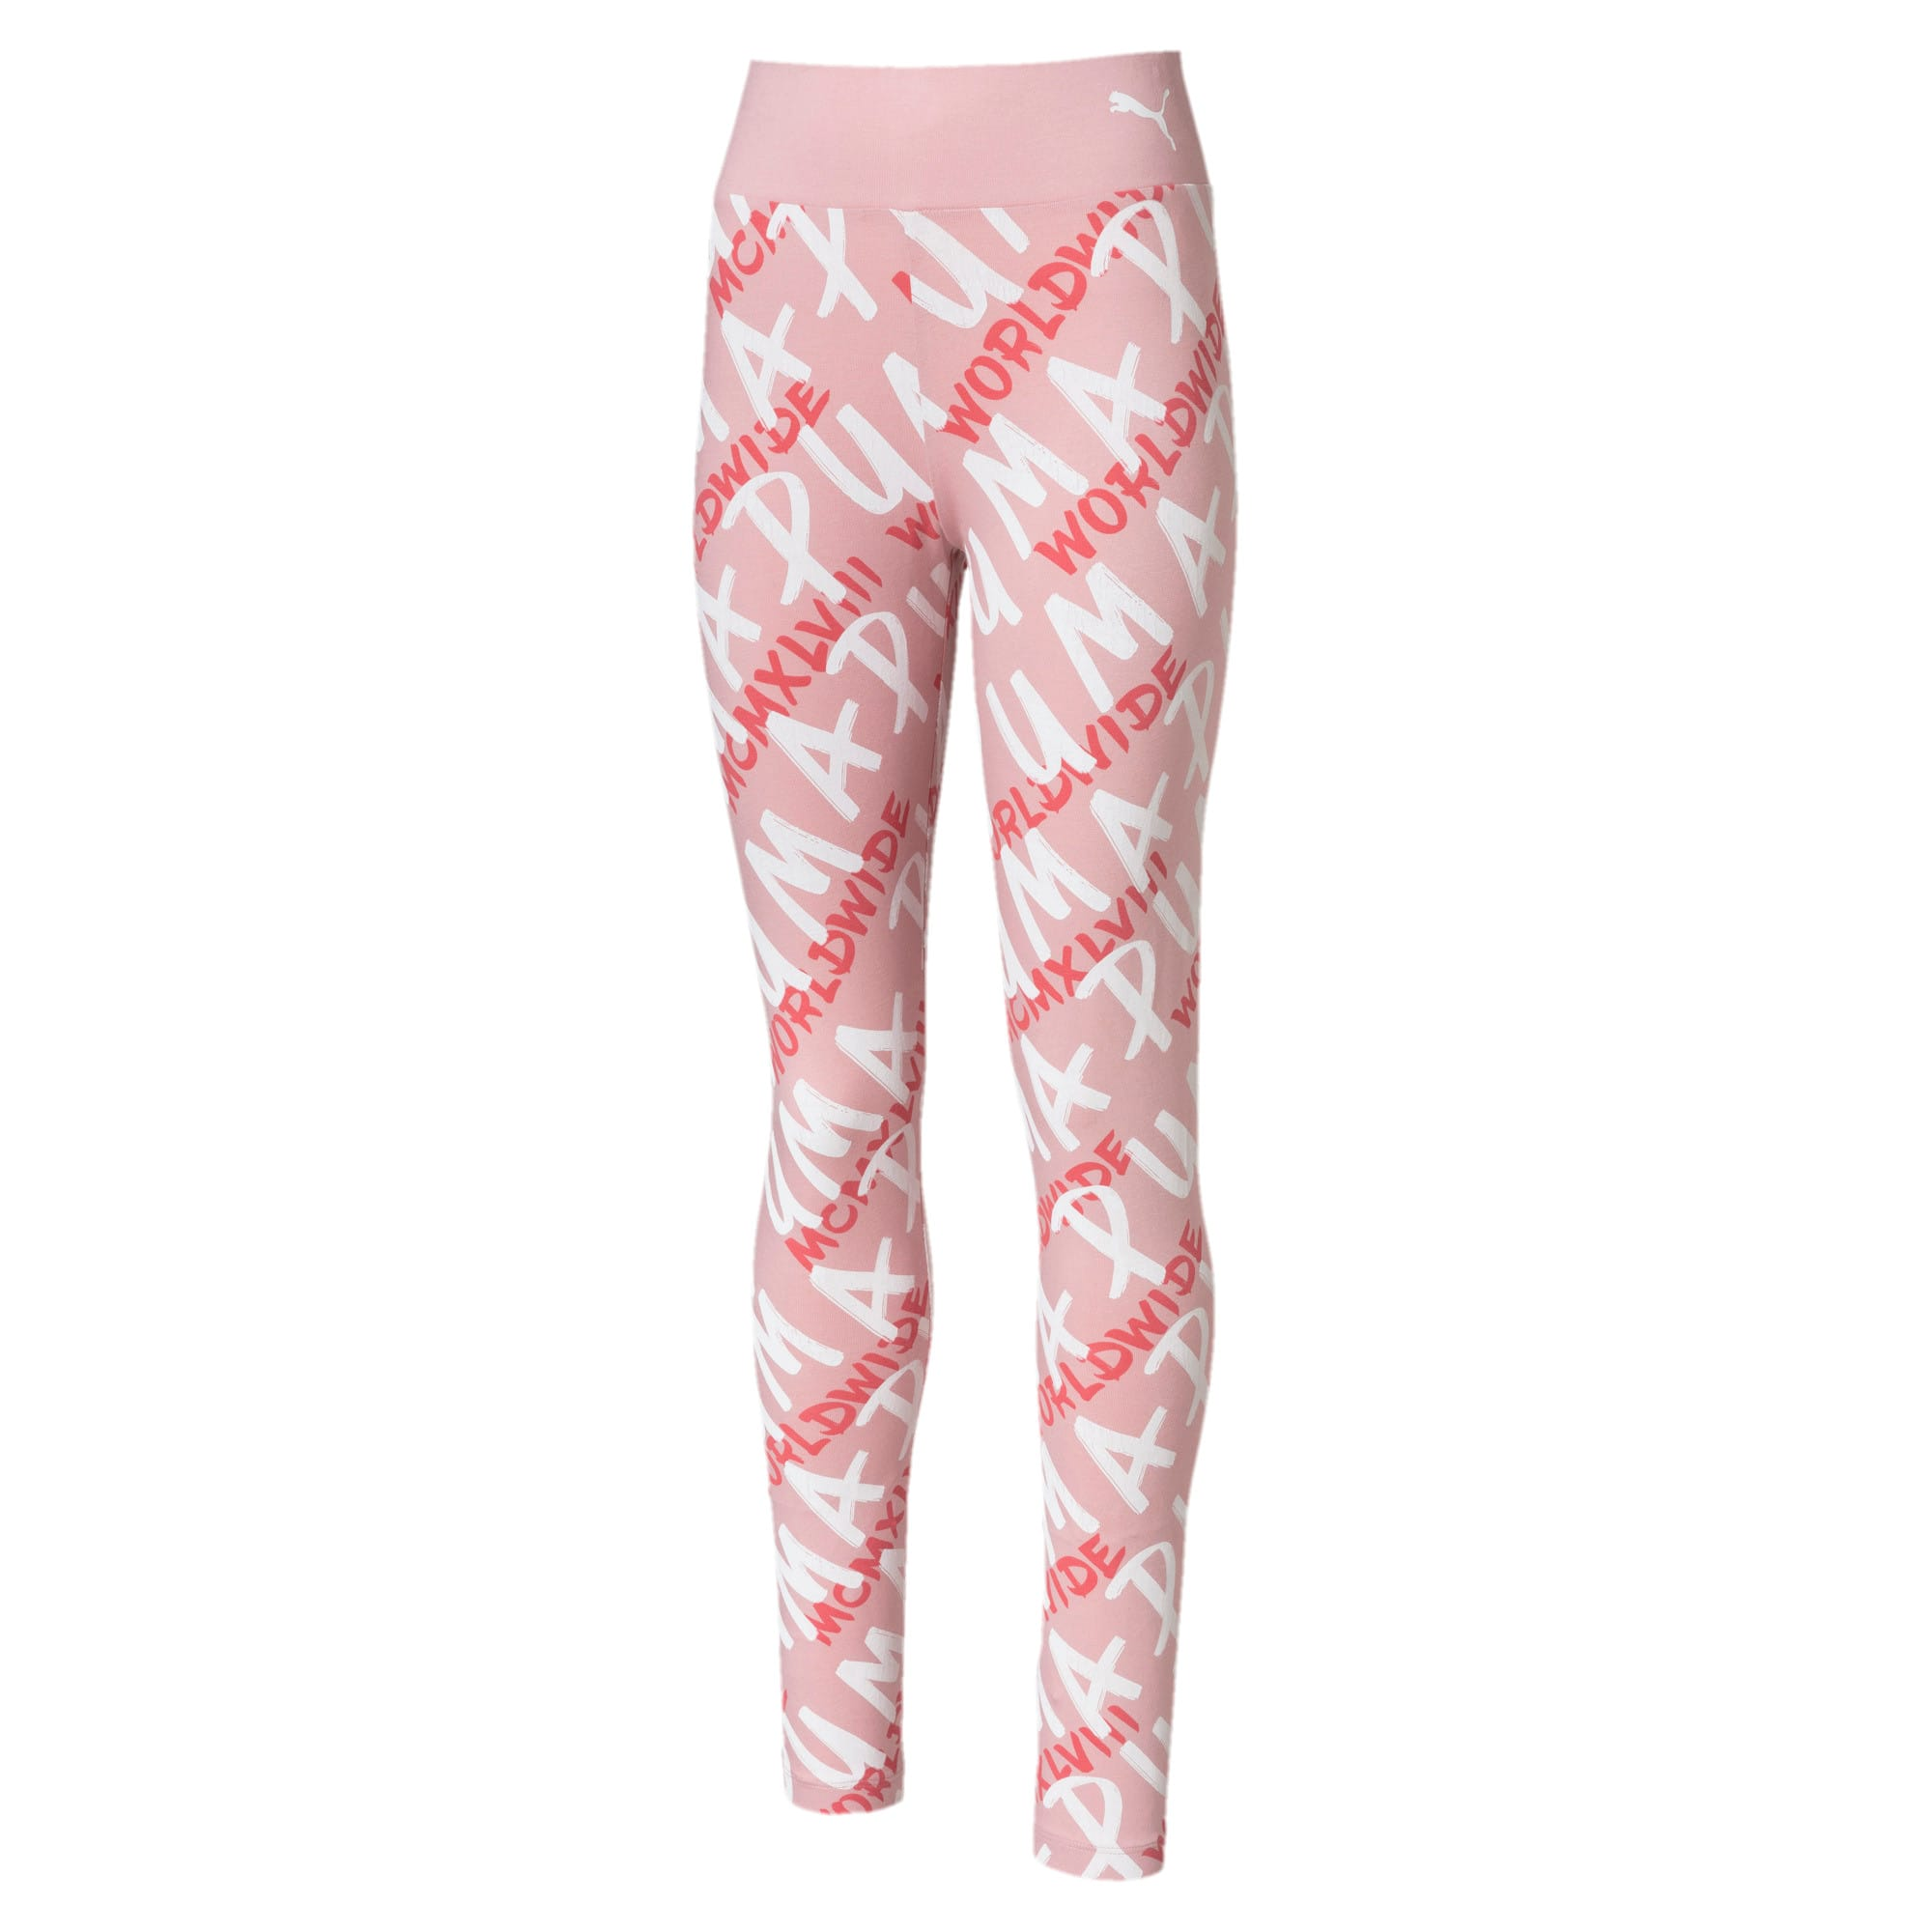 Thumbnail 1 of Alpha Girls' Leggings, Bridal Rose, medium-IND